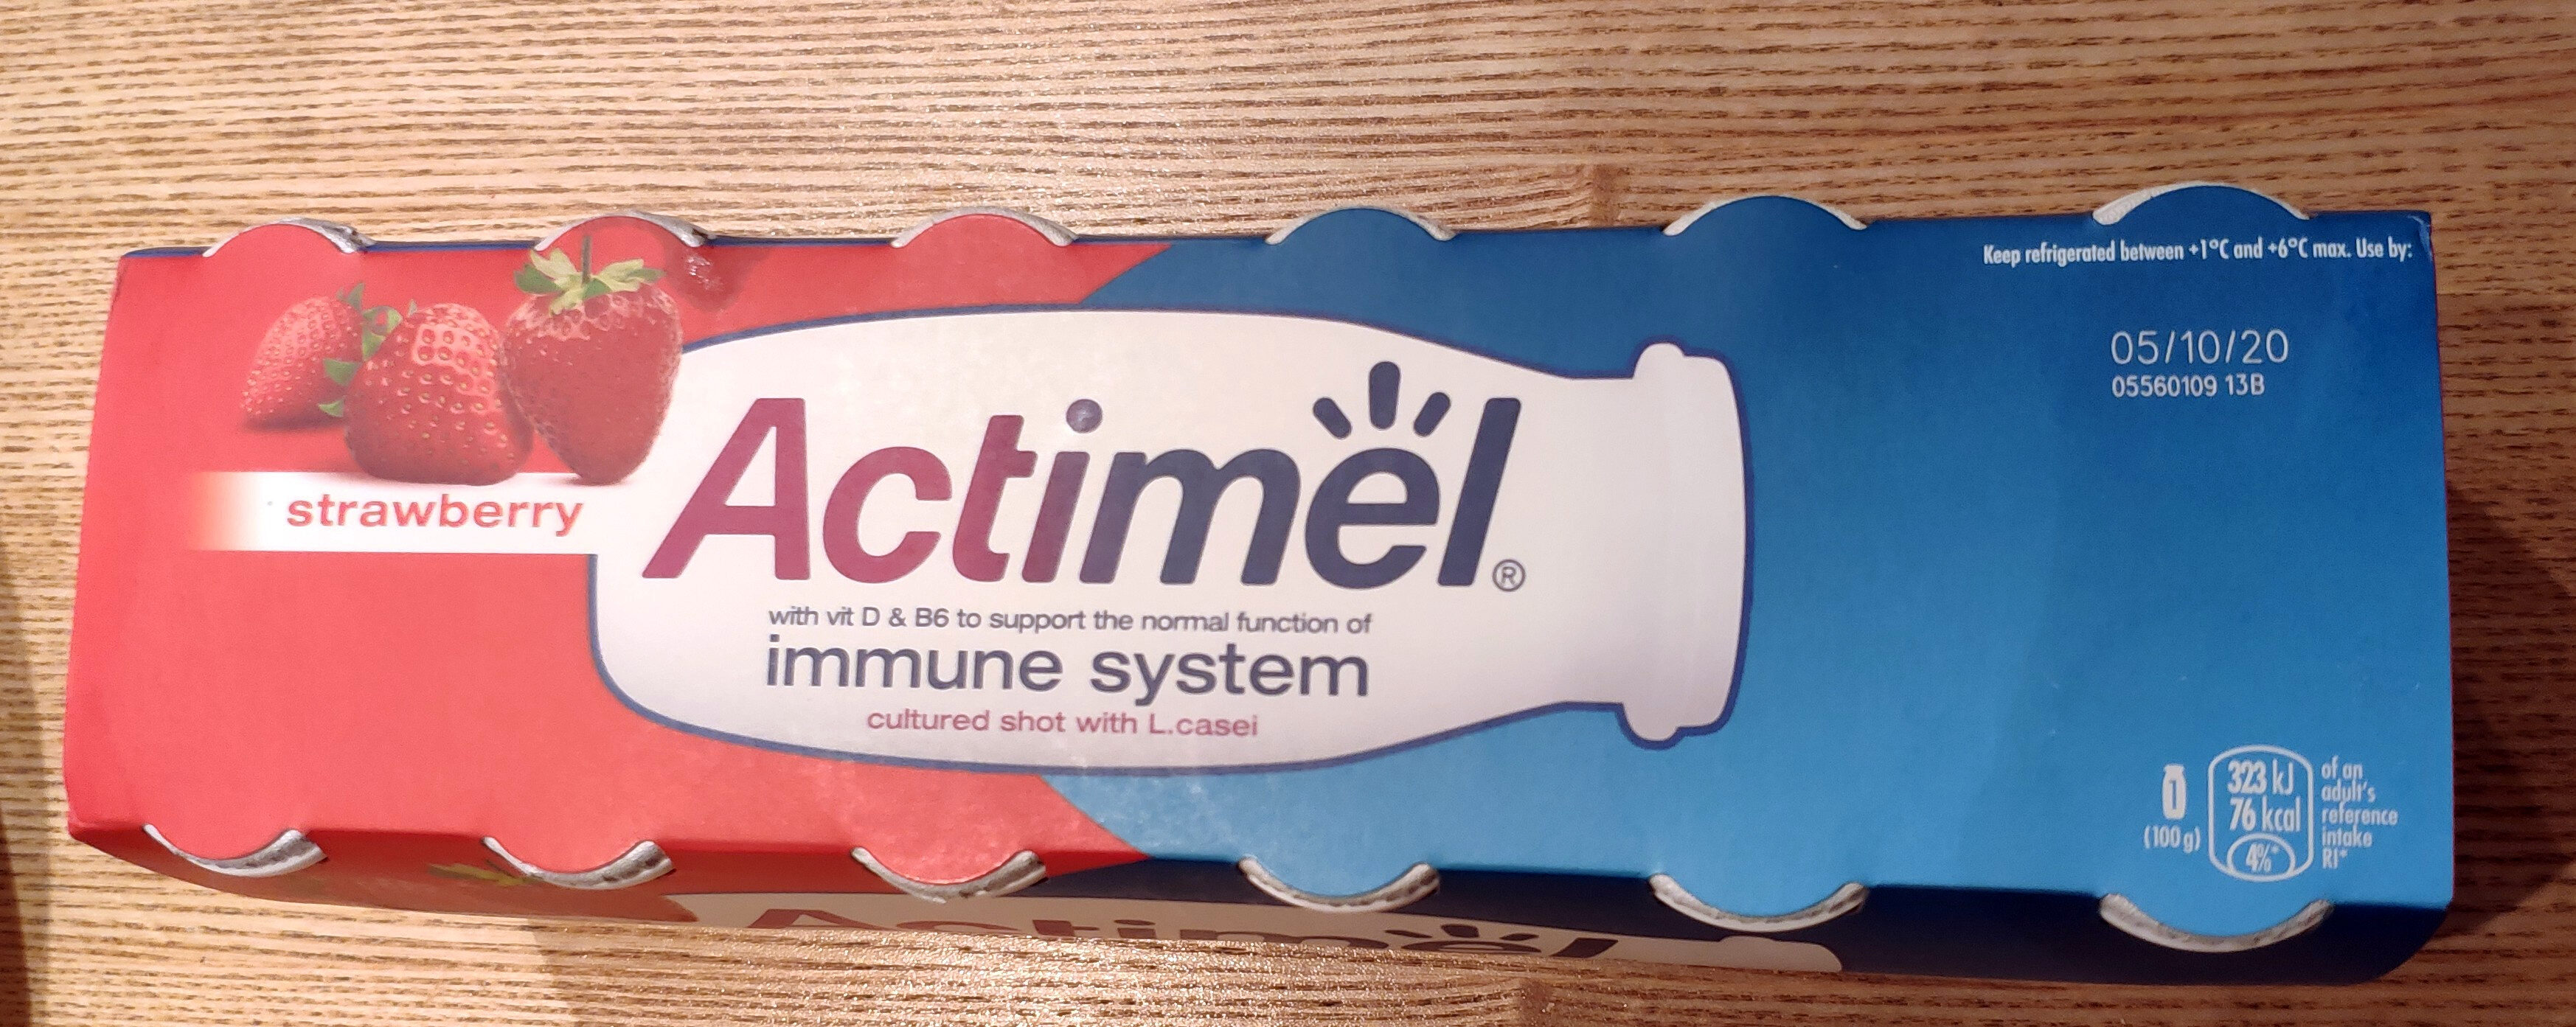 Actimel Strawberry - Product - en